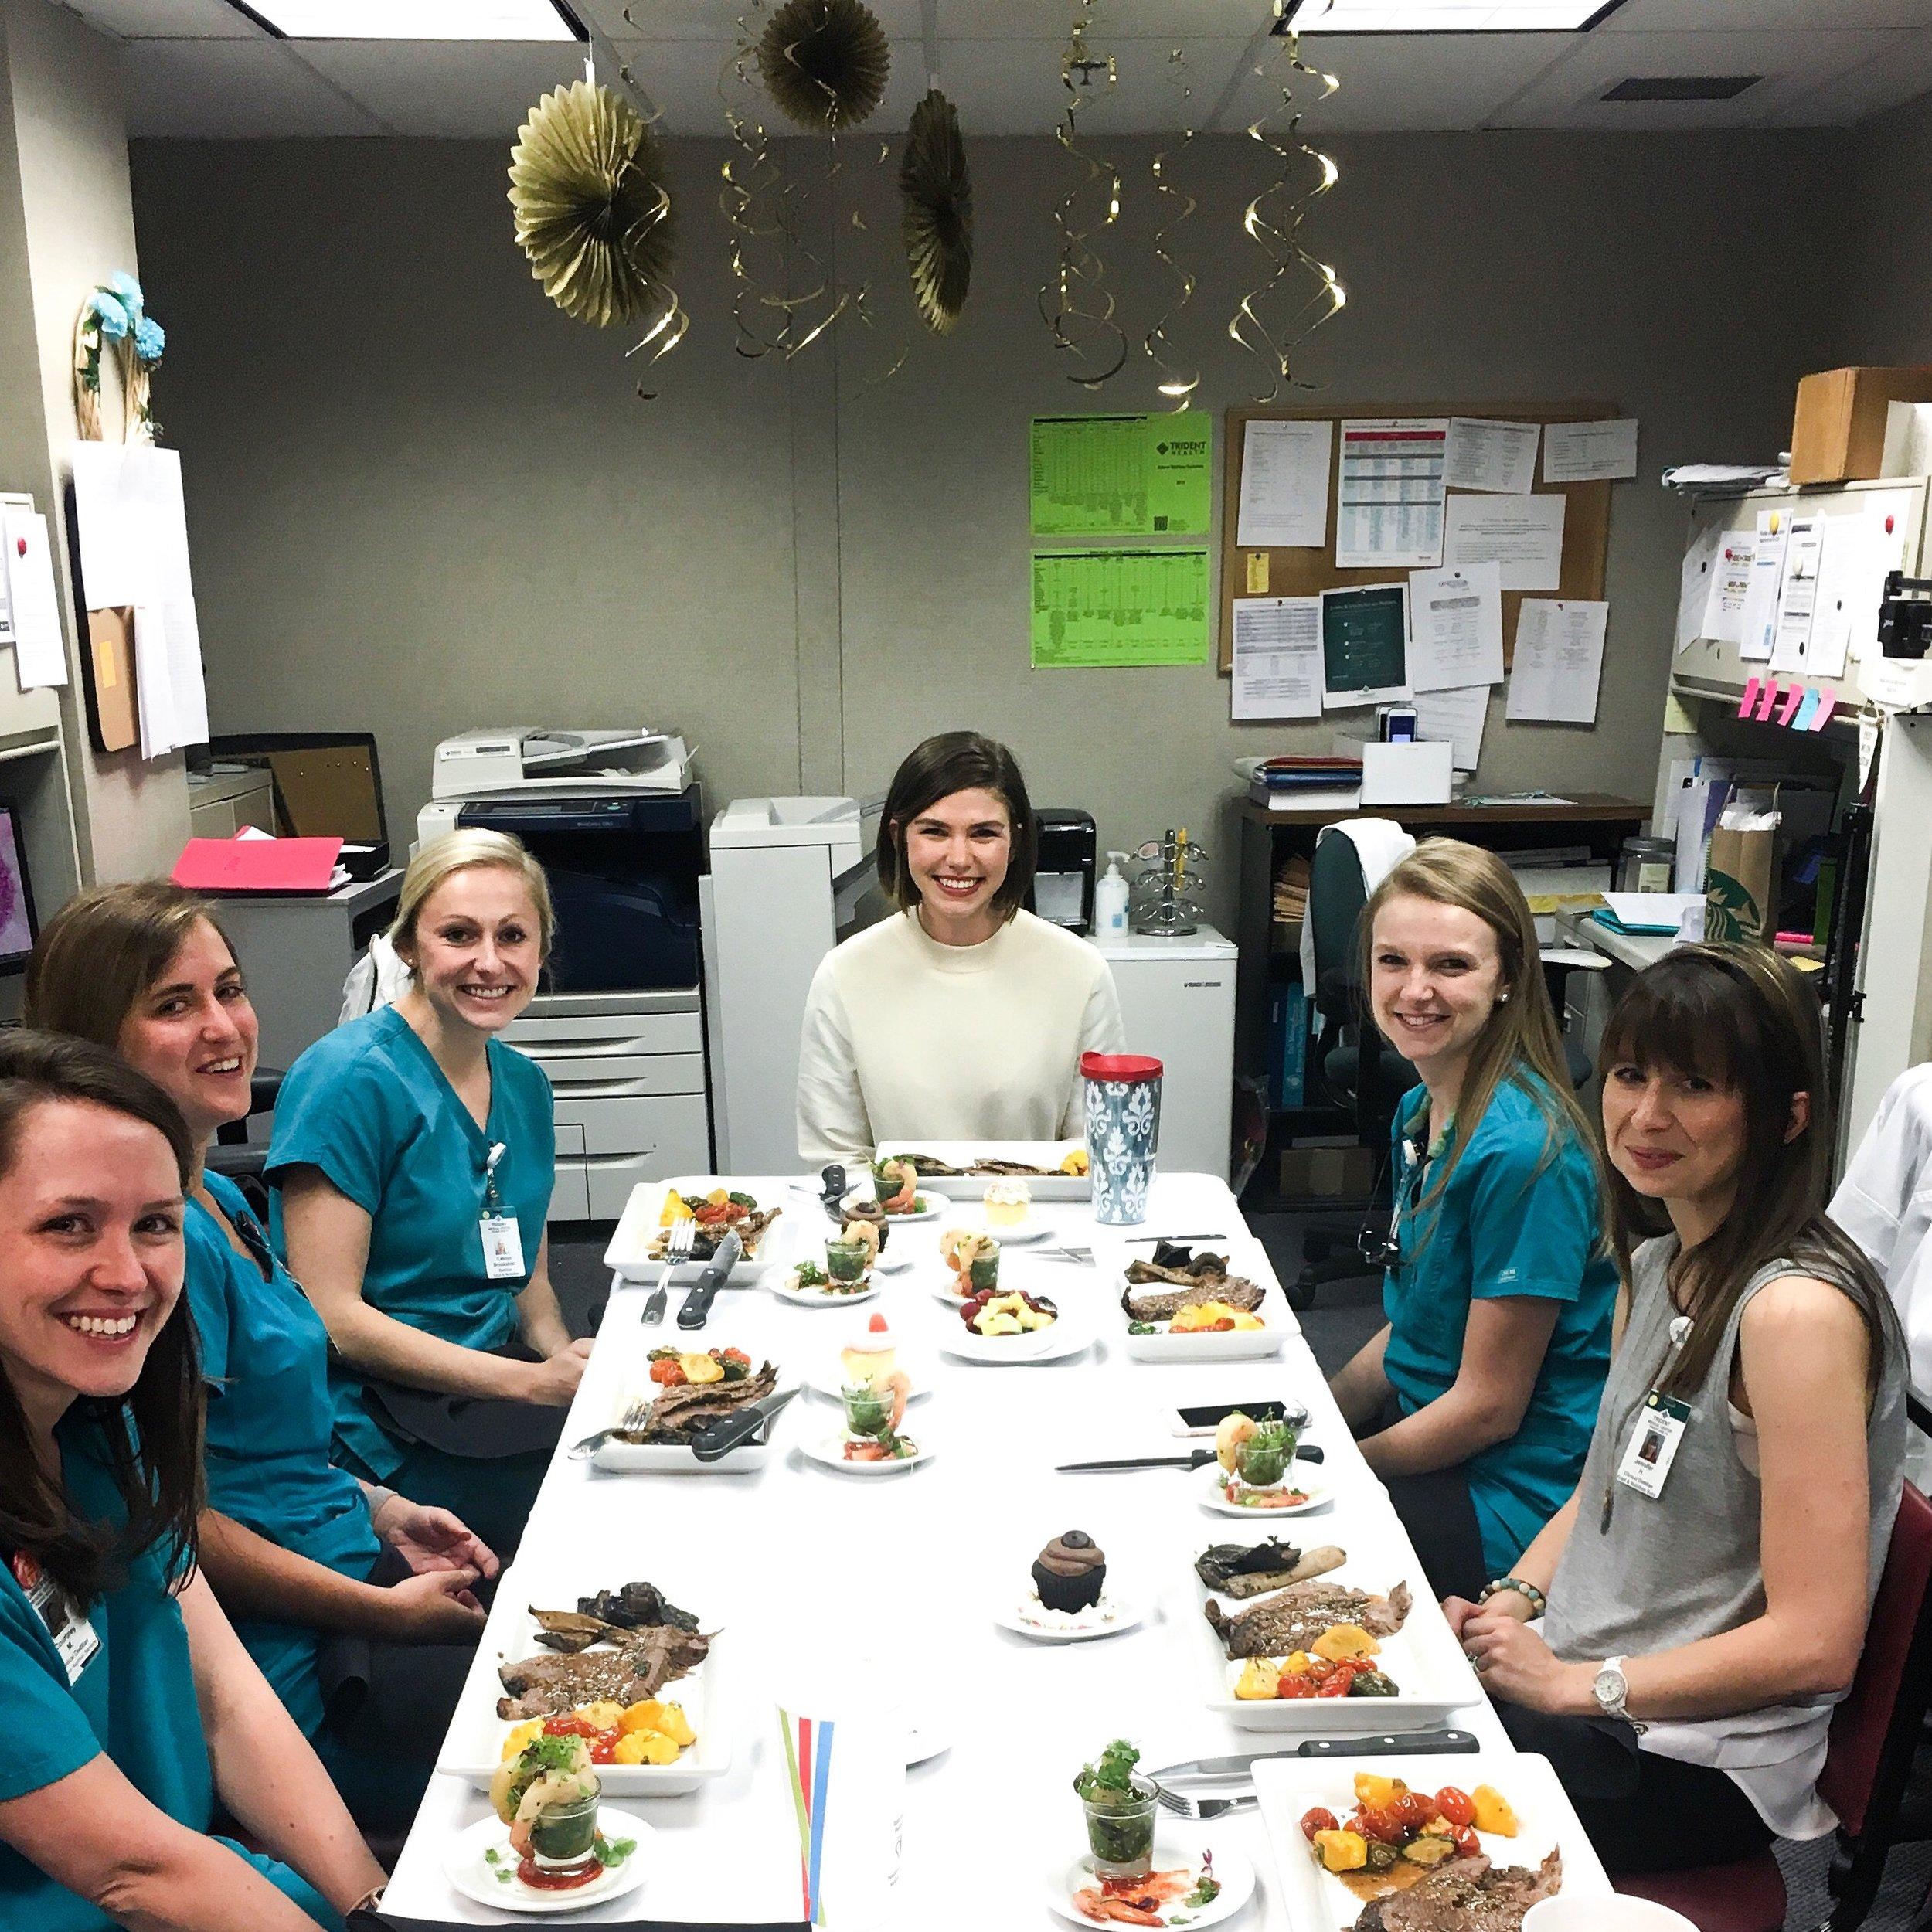 The RD's celebrated my last day as their intern!